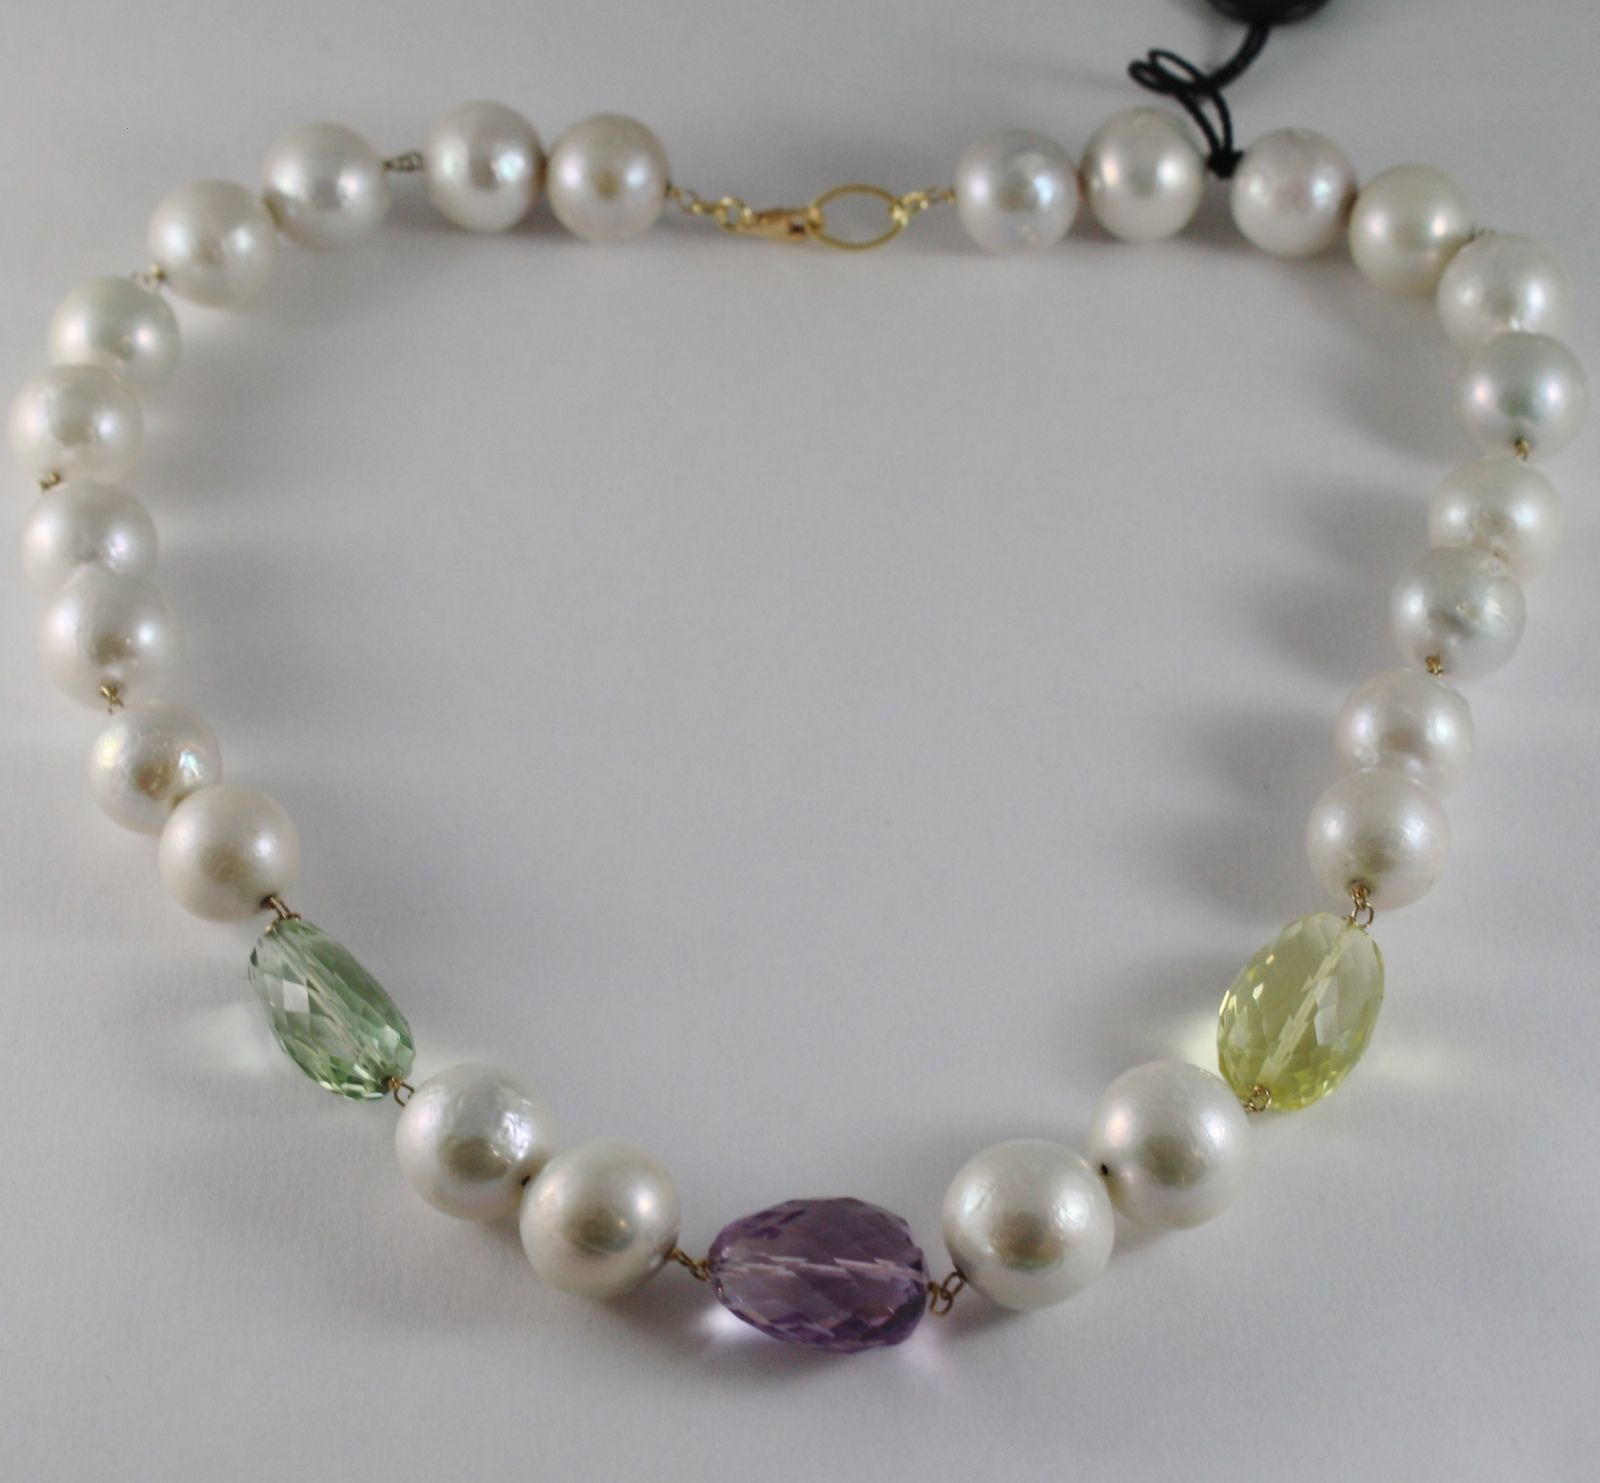 18K YELLOW GOLD NECKLACE BIG PEARLS PRASIOLITE AMETHYST LEMON QUARTZ ITALY MADE